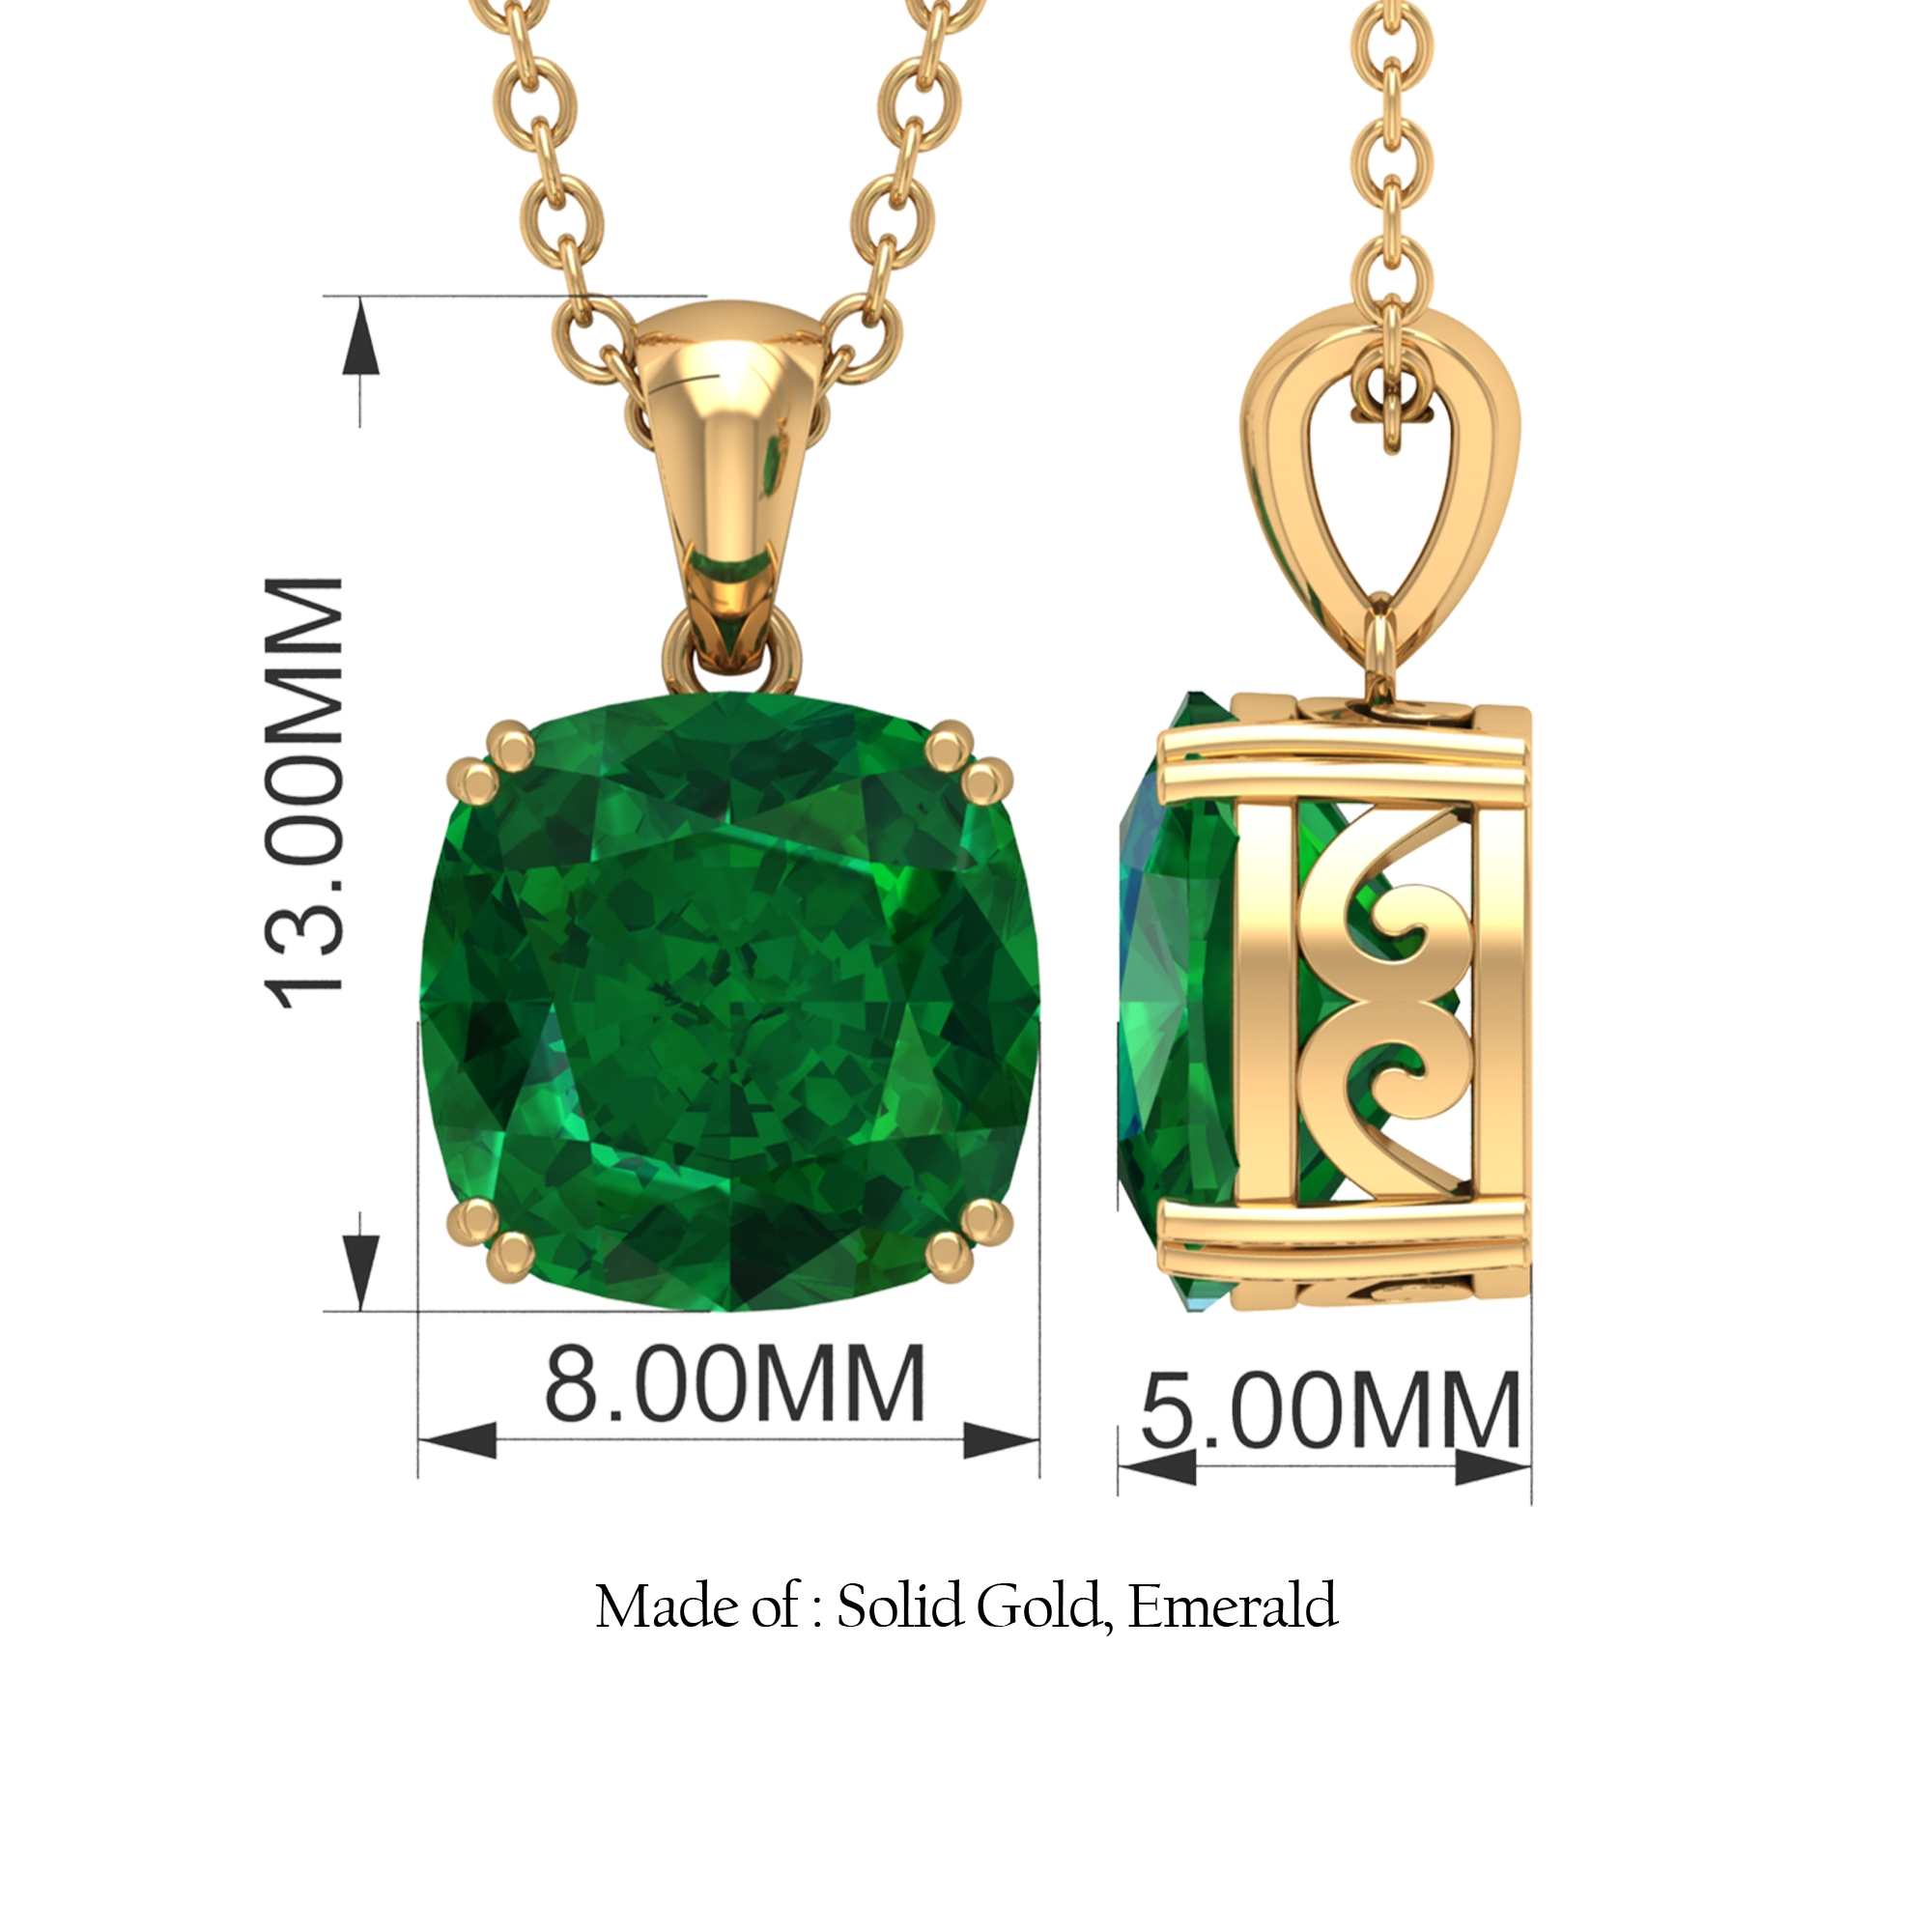 8 MM Cushion Cut Emerald Solitaire Pendant in Double Prong Setting